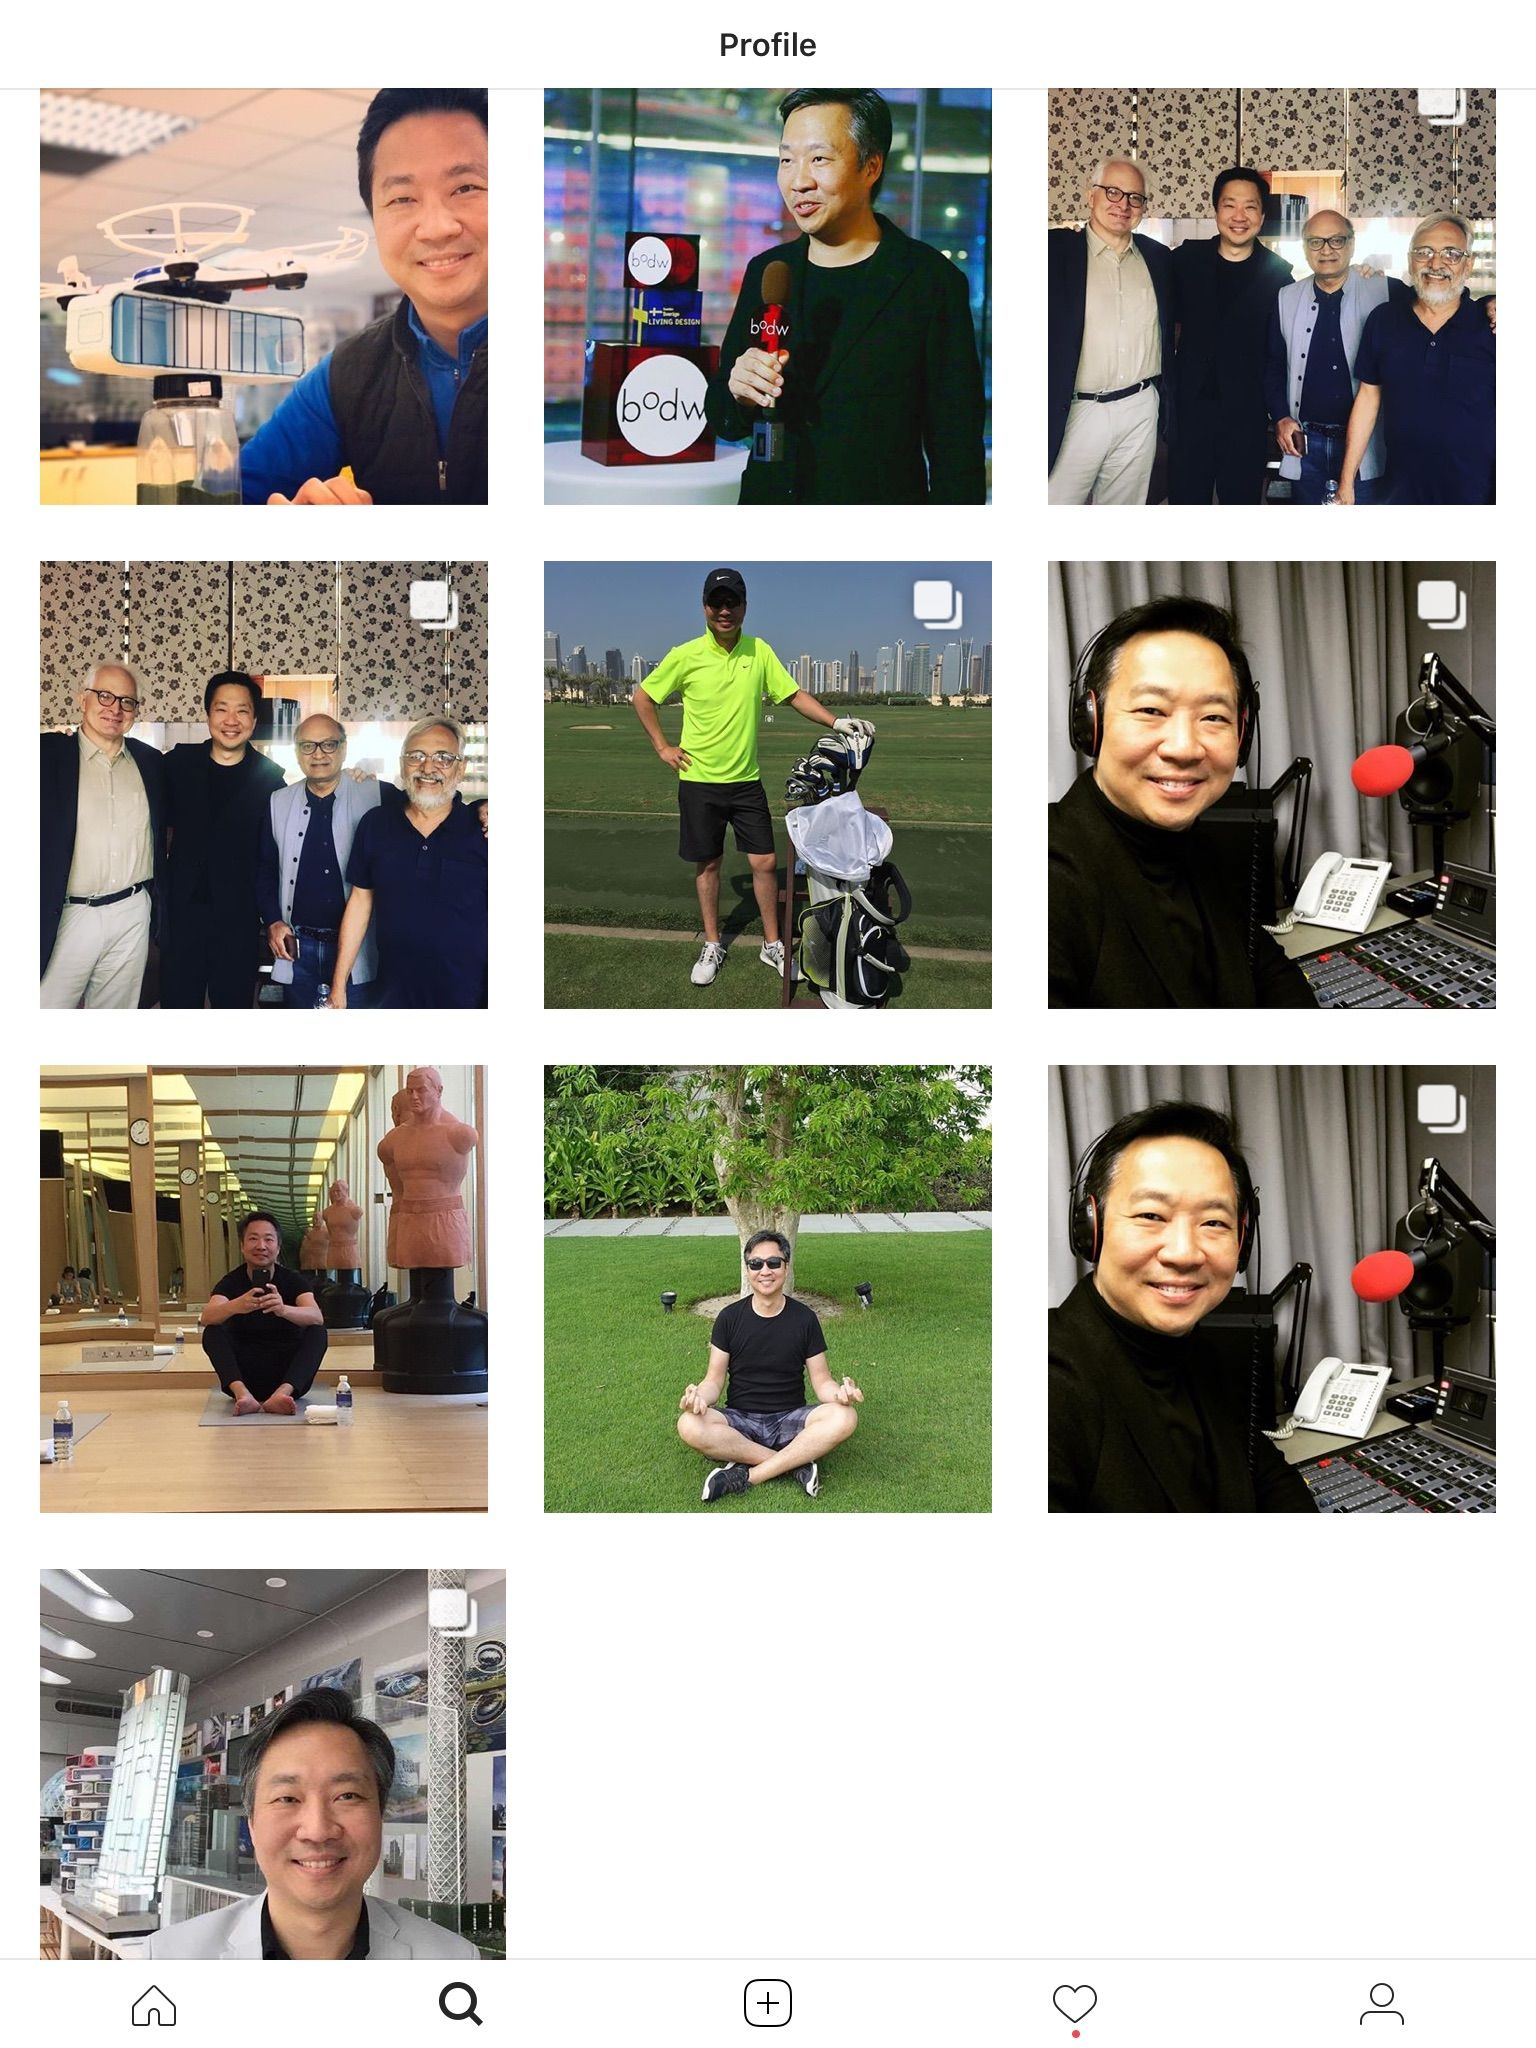 Tony Wong James Frank Chang And Janes Chan Has Multiple Profiles On Ig Fb And Dating Sites A Nigerian Scammer Impersonating Scammer Pictures Nigerian Tony